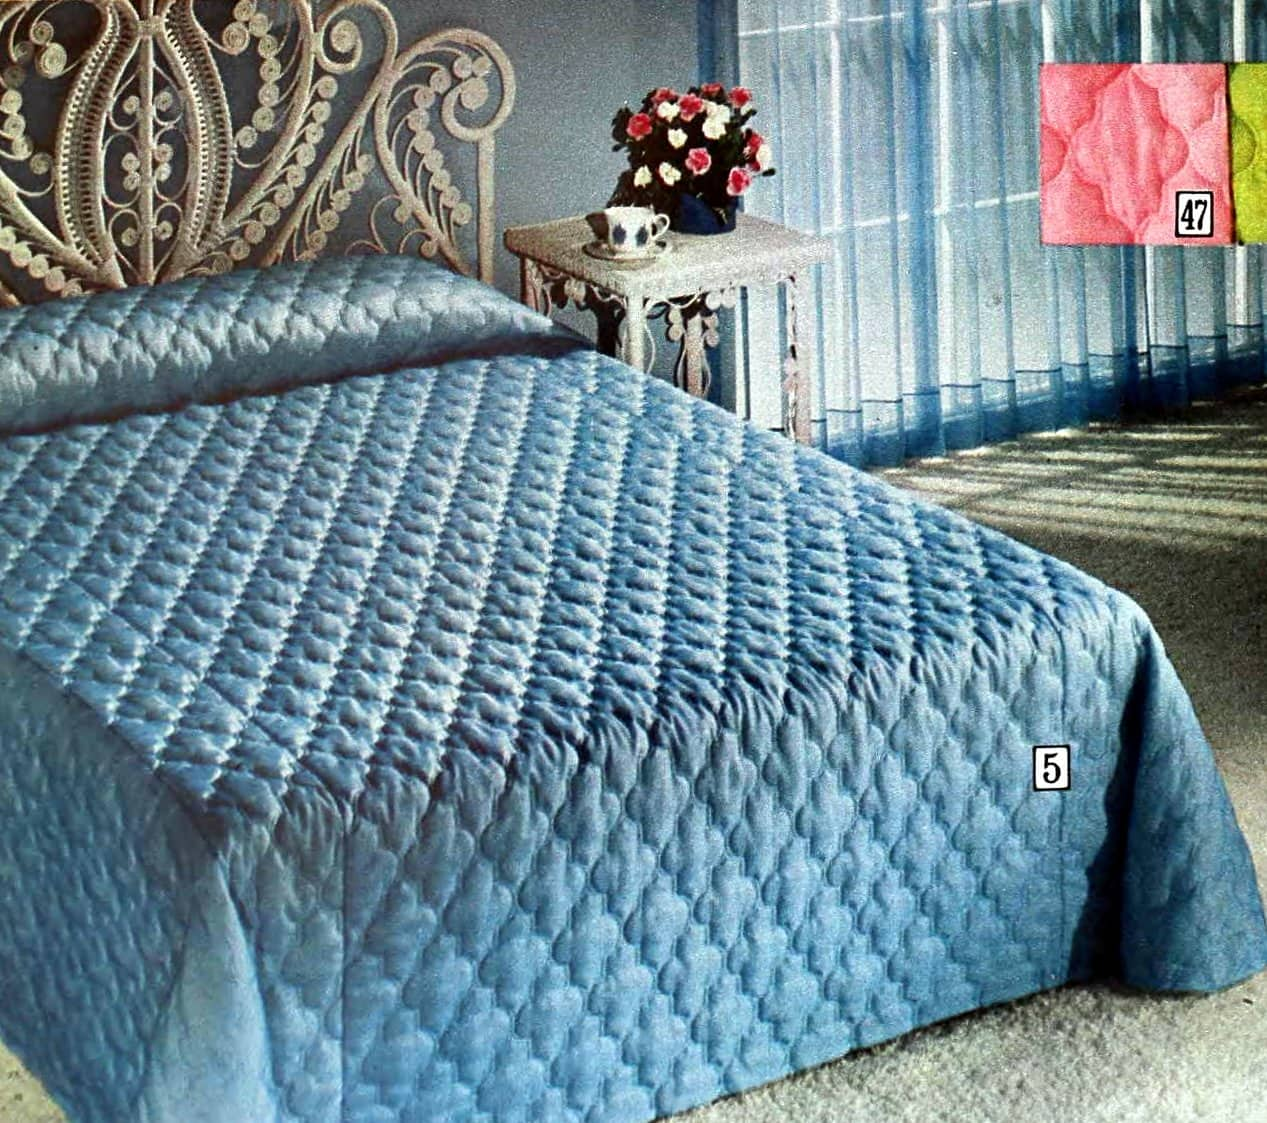 Blue polyester quilted queen-size bedspread from the seventies